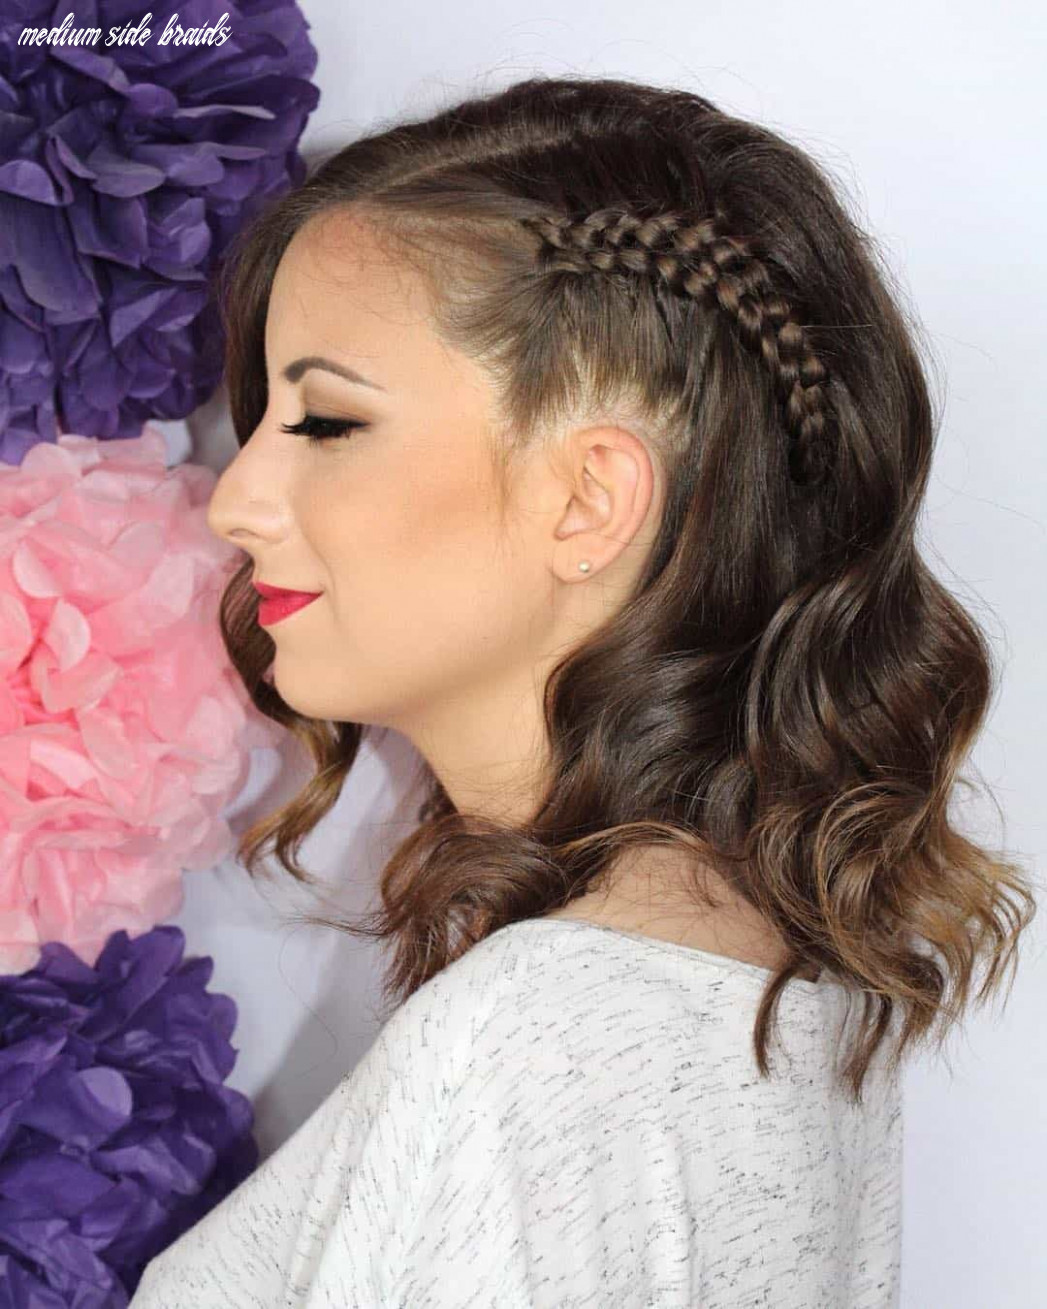 11 side braid hairstyles which are simply spectacular wild about